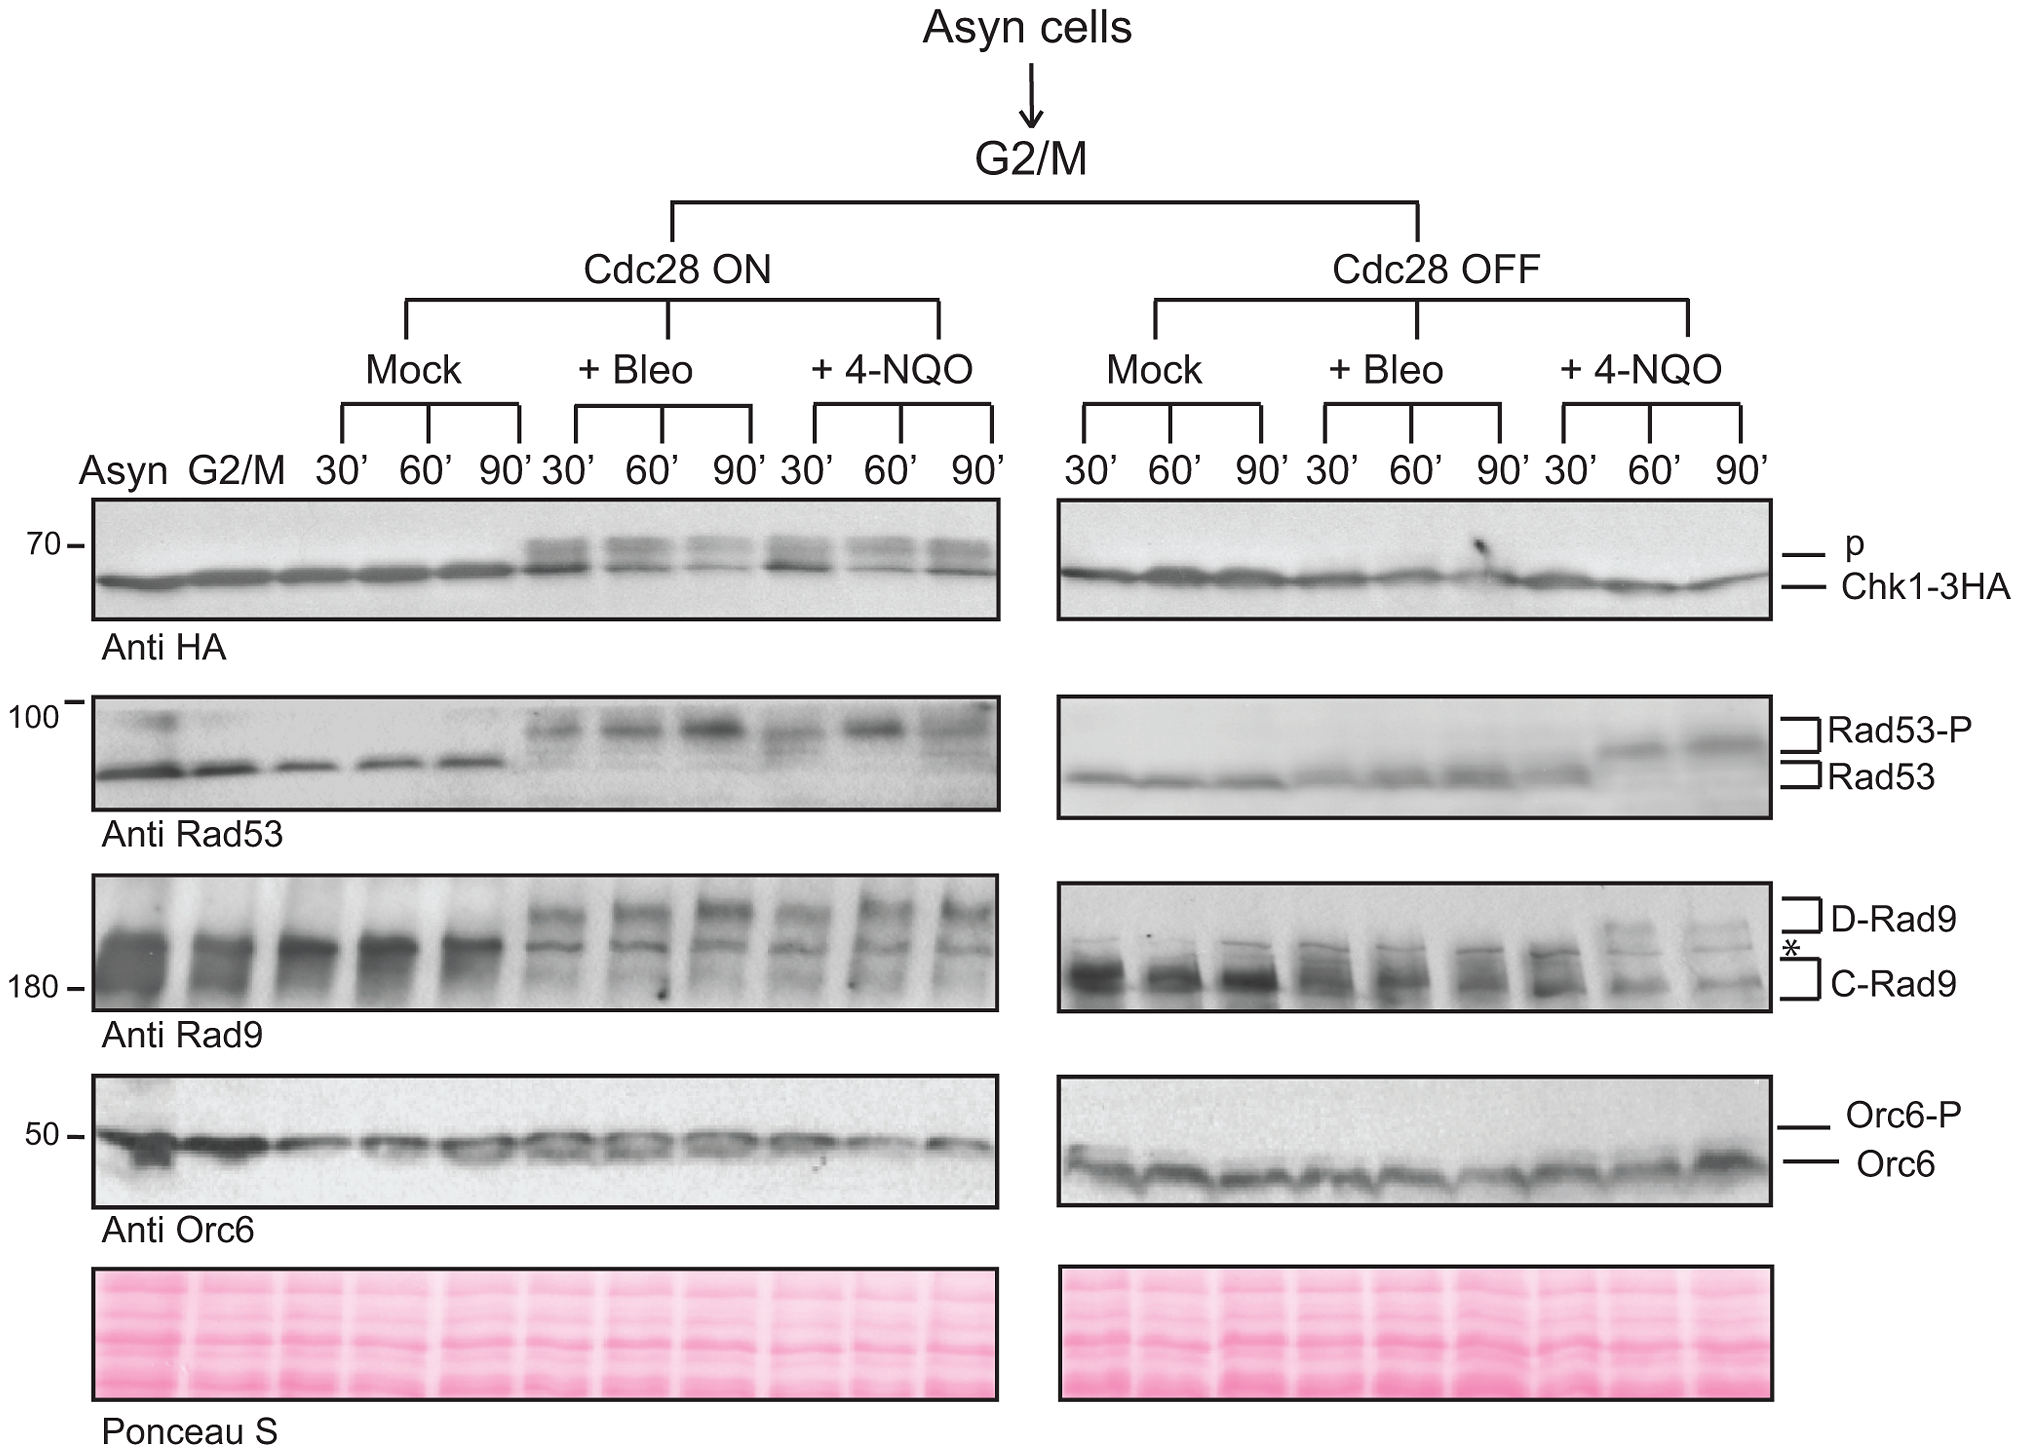 CDK is required for the activation of Chk1-dependent signaling.